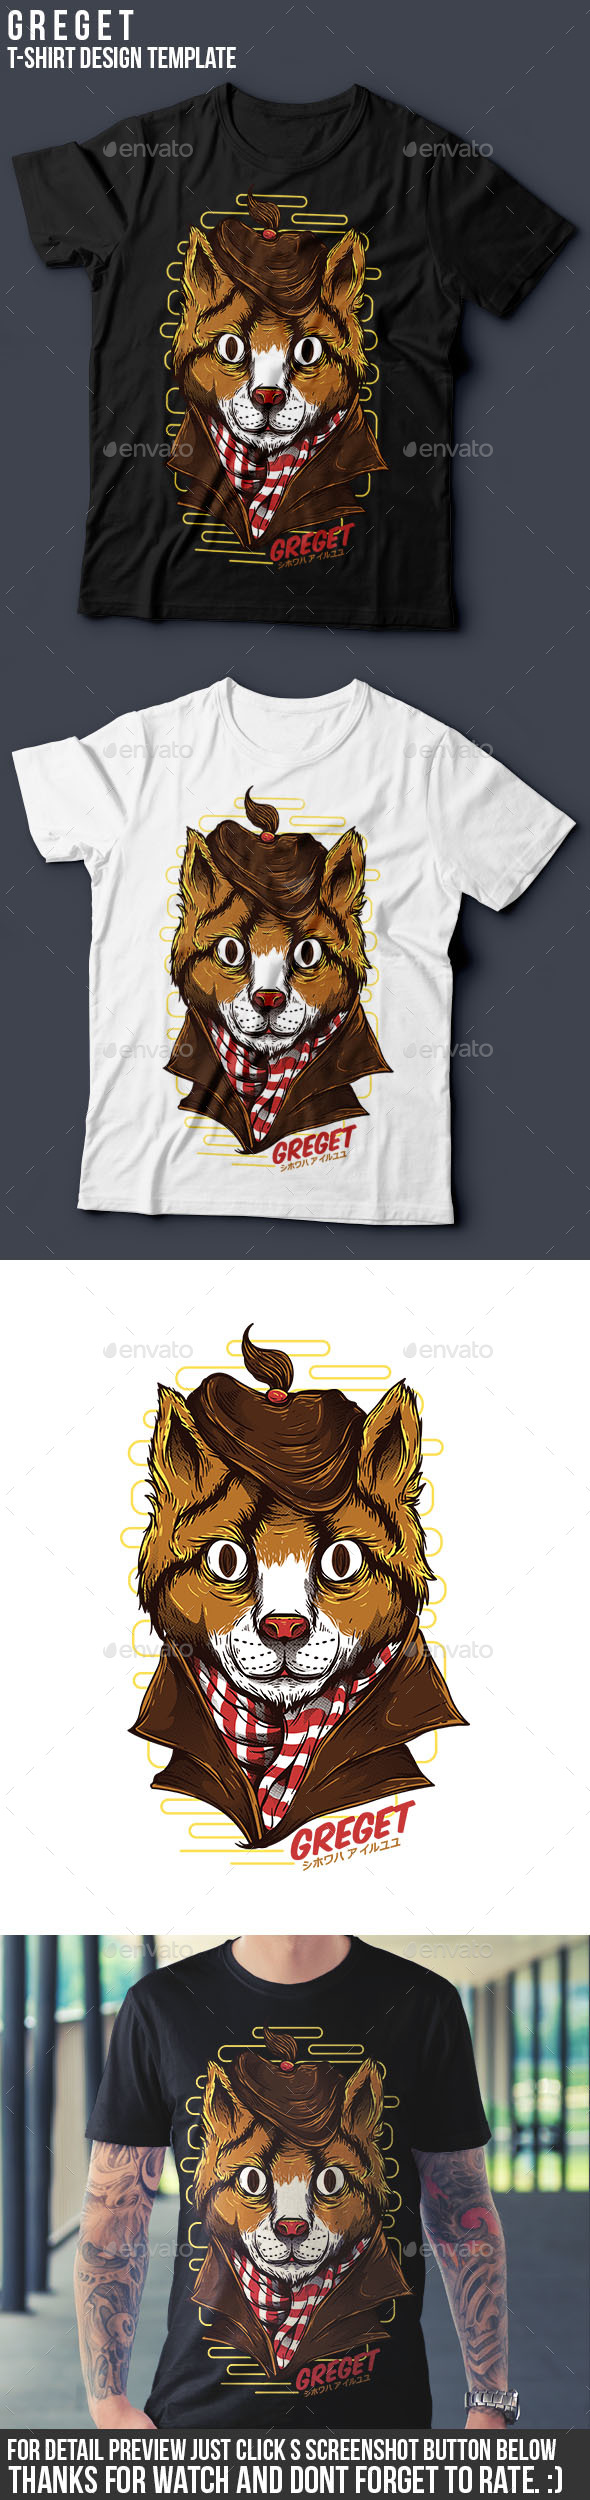 Greget T-Shirt Design - Funny Designs